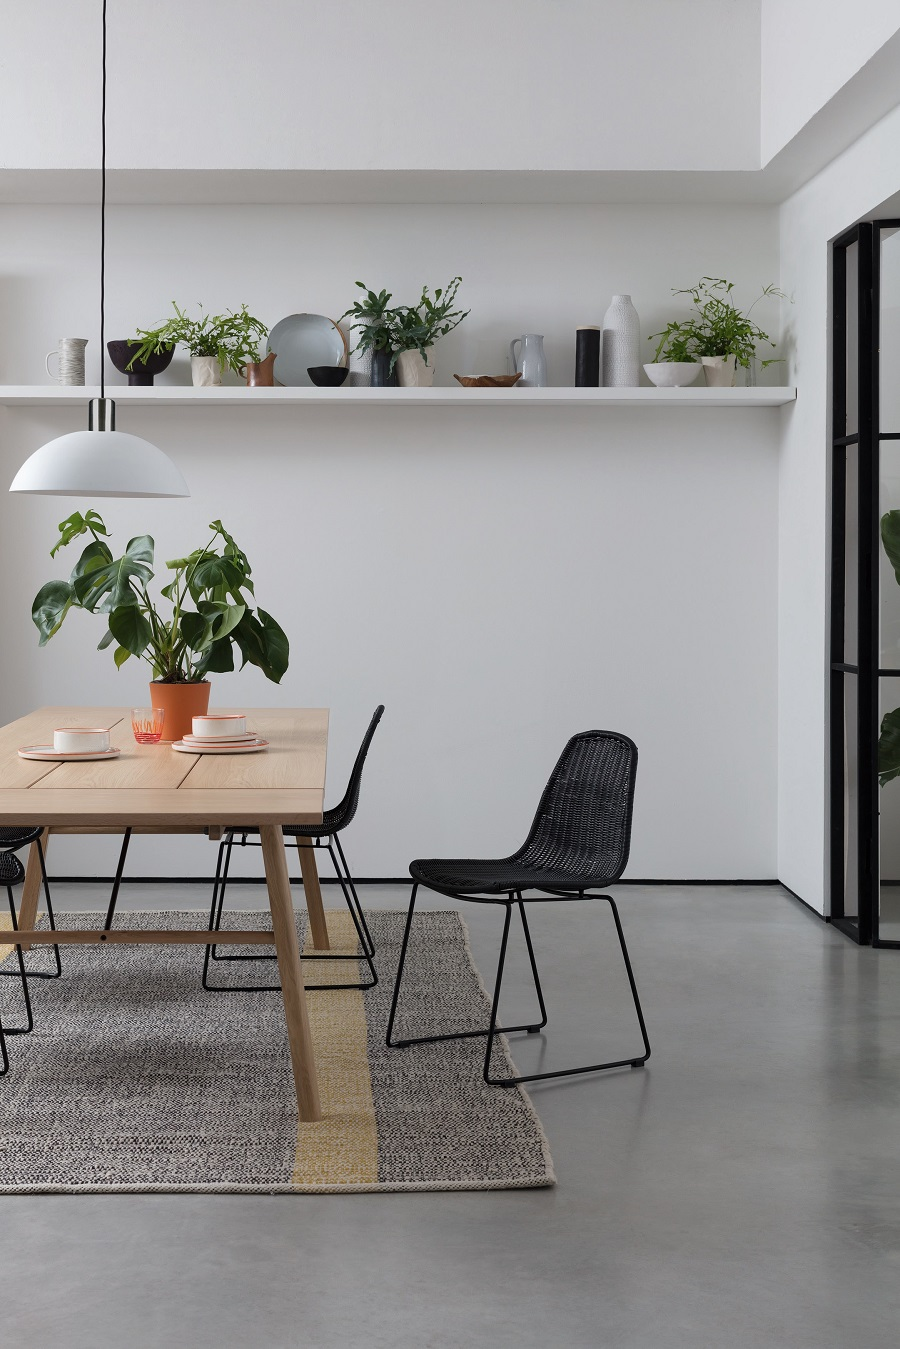 Global Design Ideas for Spring - Scandi inspired